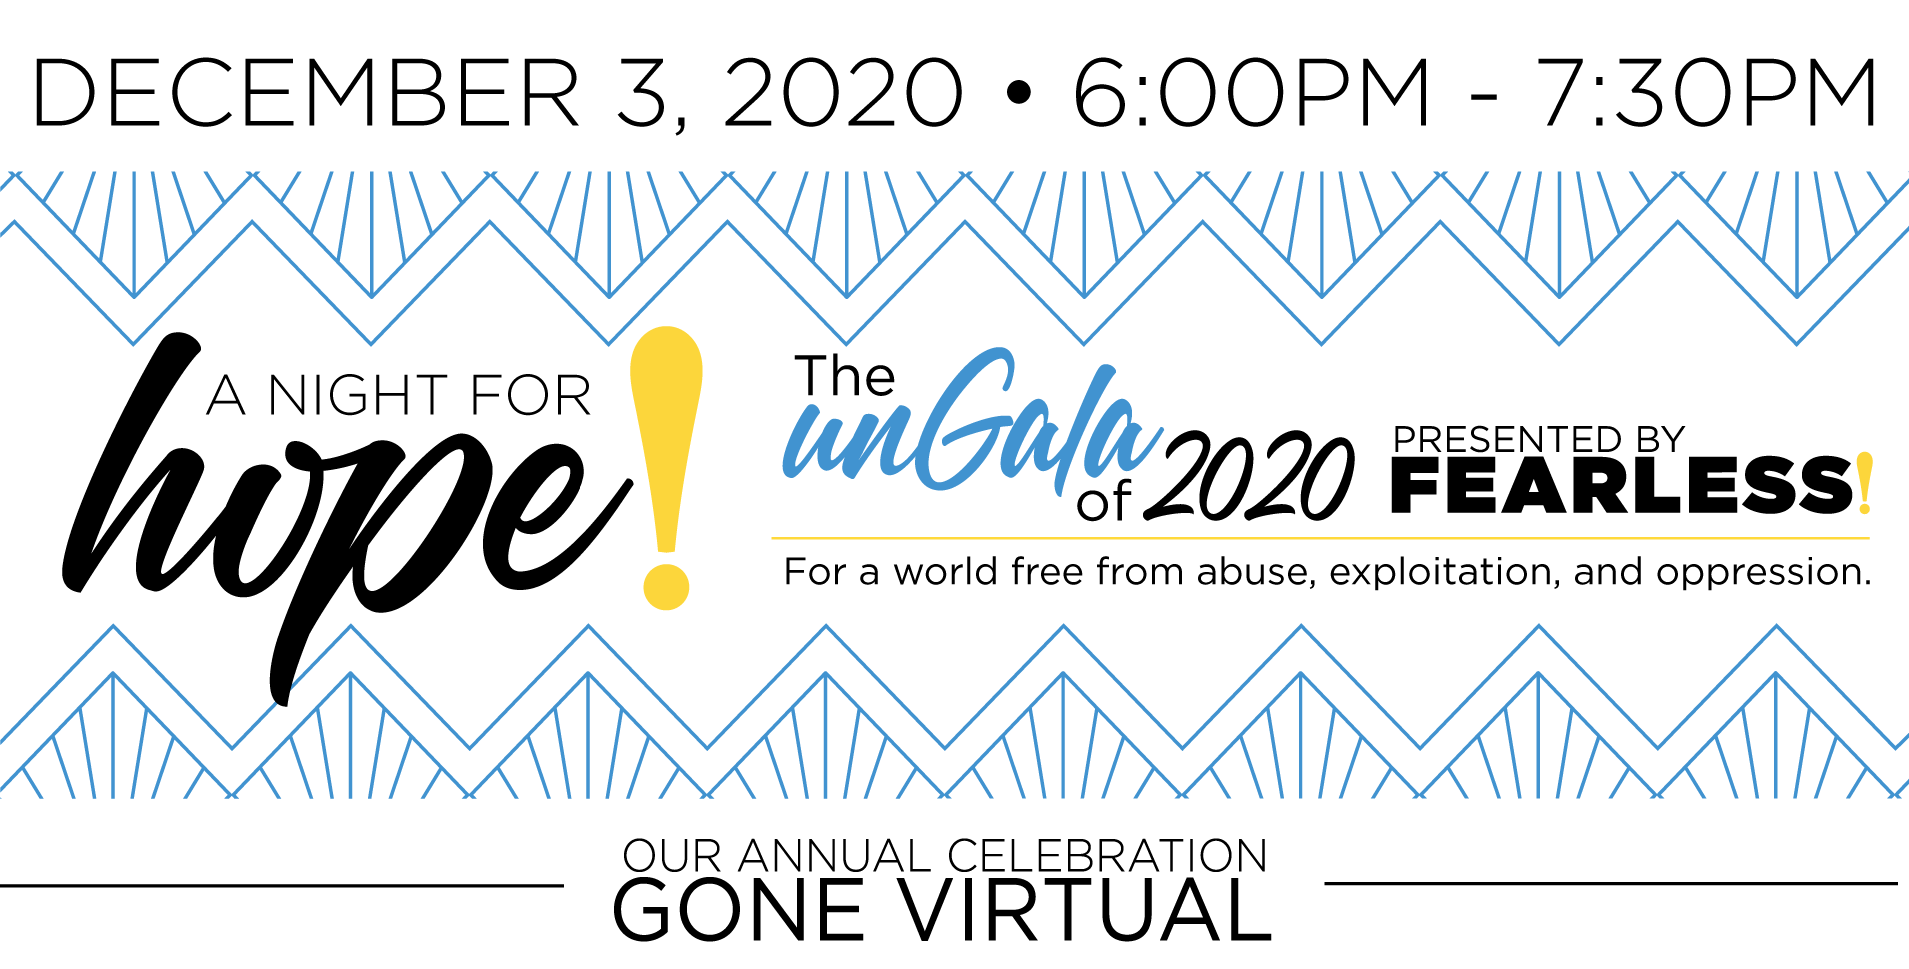 The Night for Hope - unGala